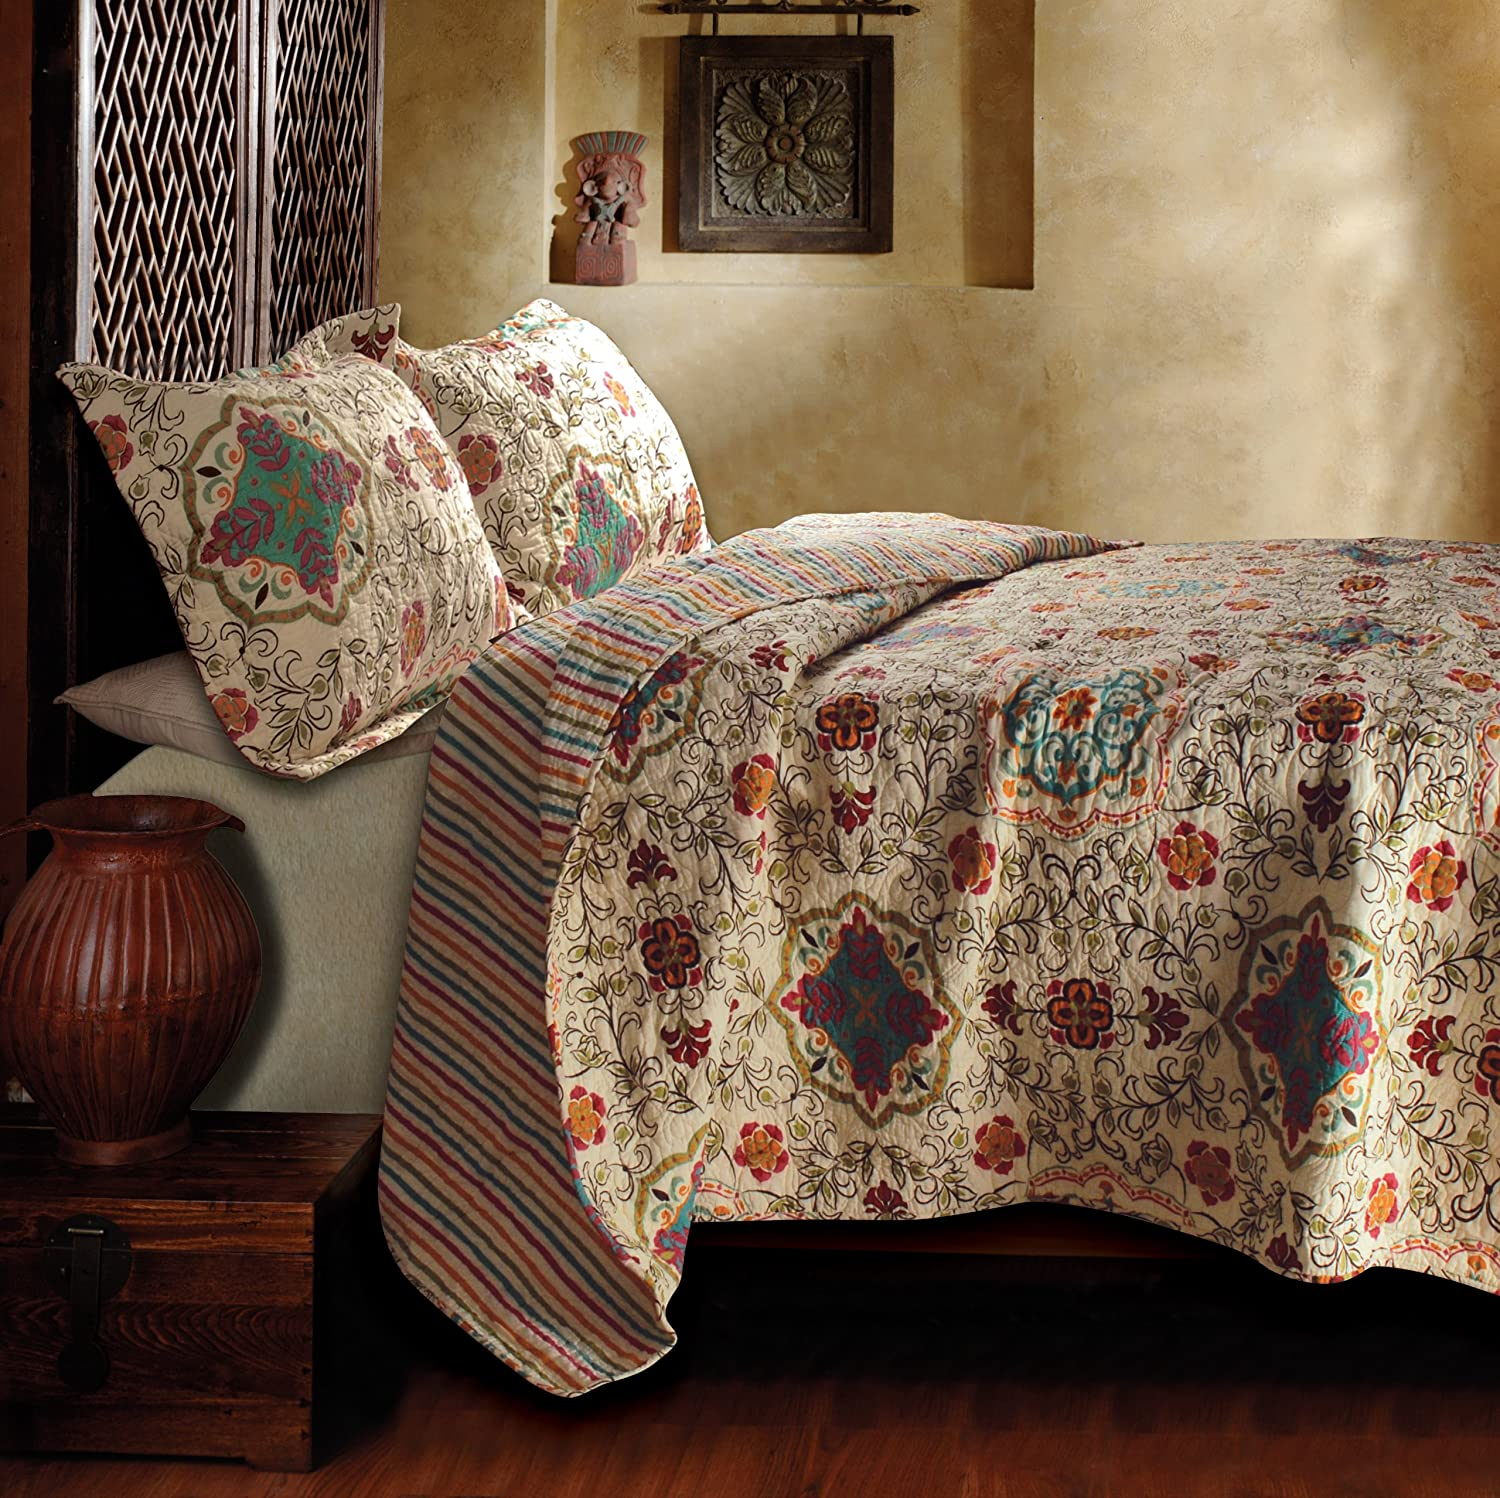 Greenland Home Esprit Spice Quilt Set, Full/Queen